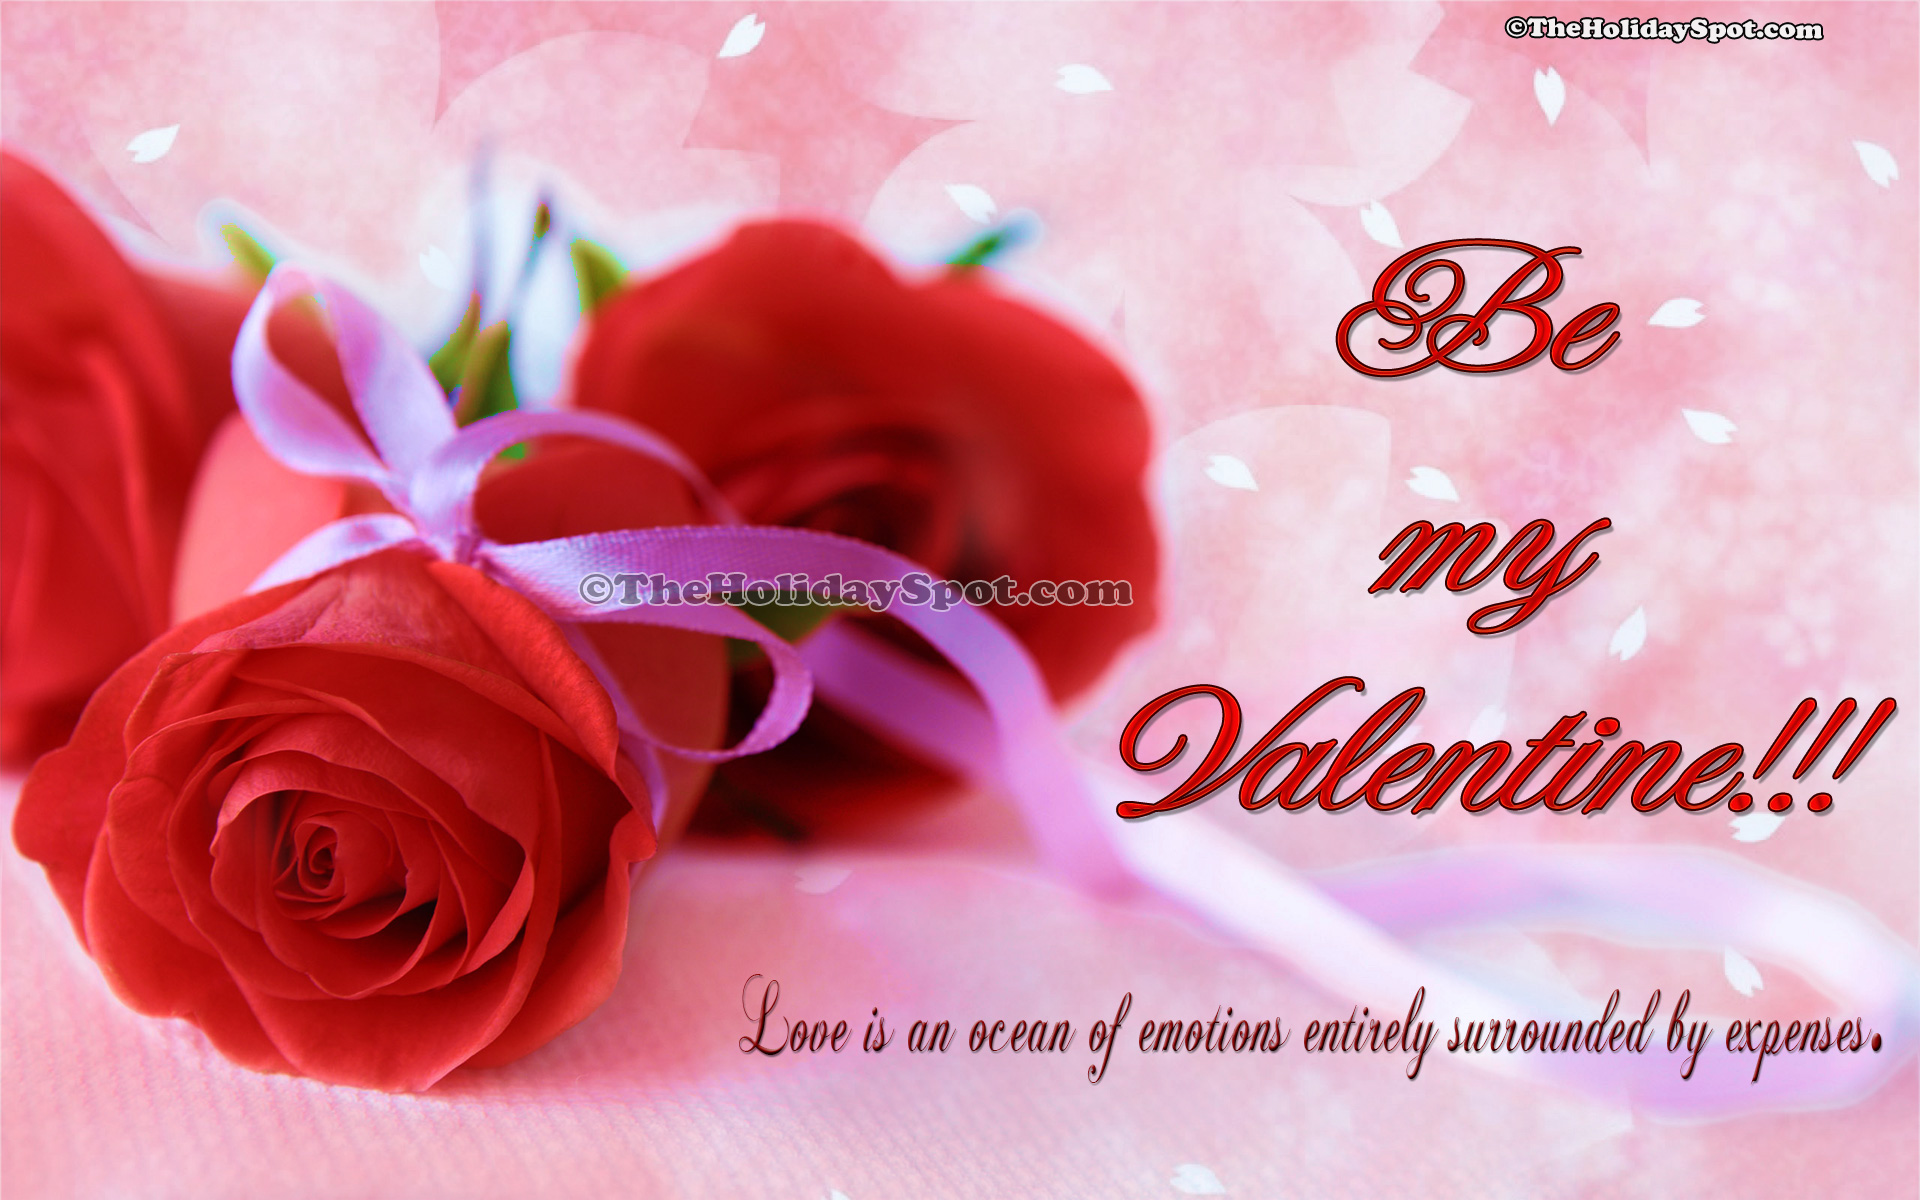 HD Valentines Day Wallpapers Of Two Red Roses